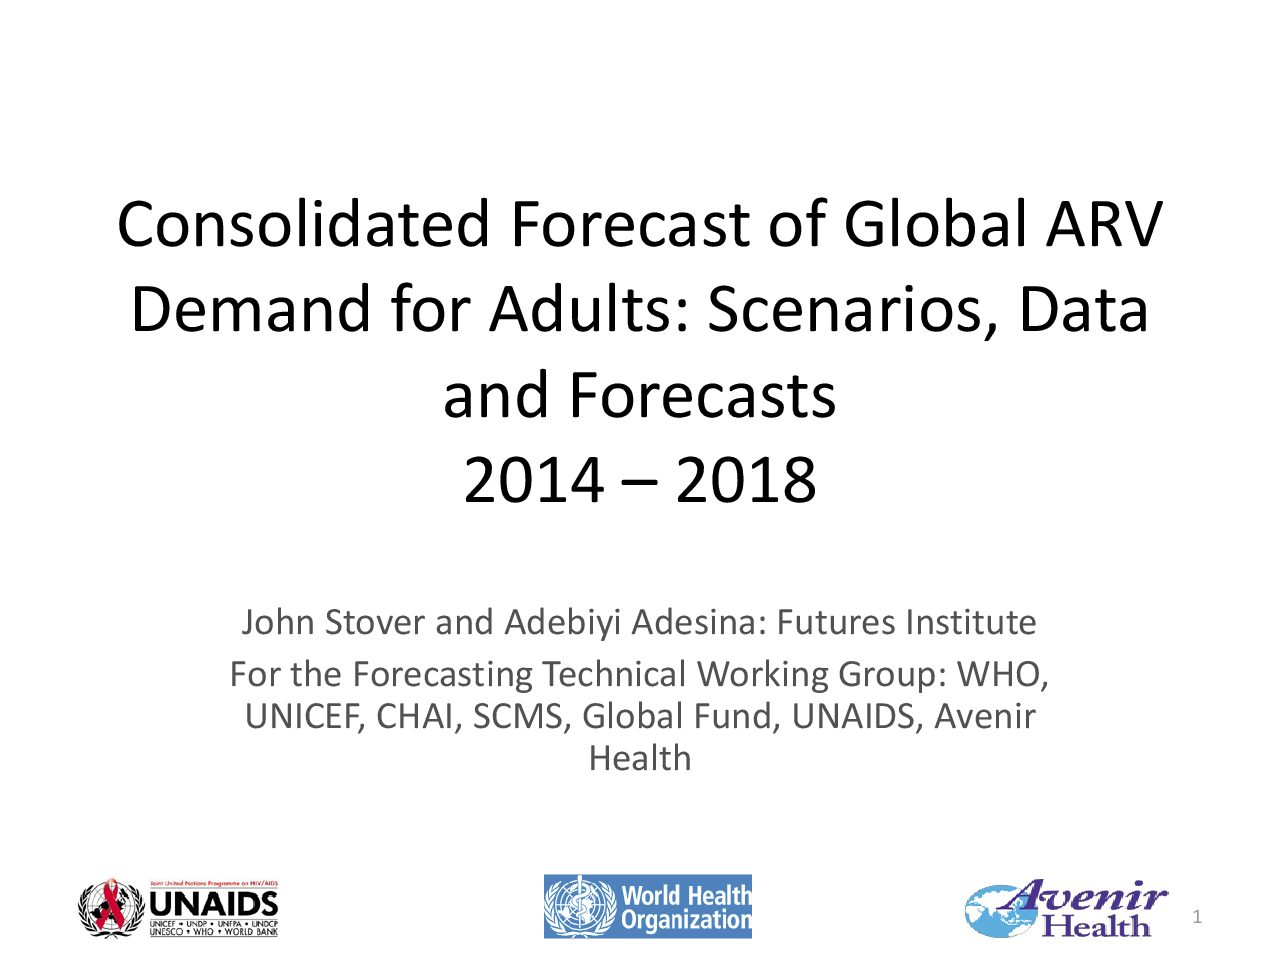 Consolidated Forecast of Global ARV Demand for Adults: Scenarios, Data and Forecasts 2014 – 2018